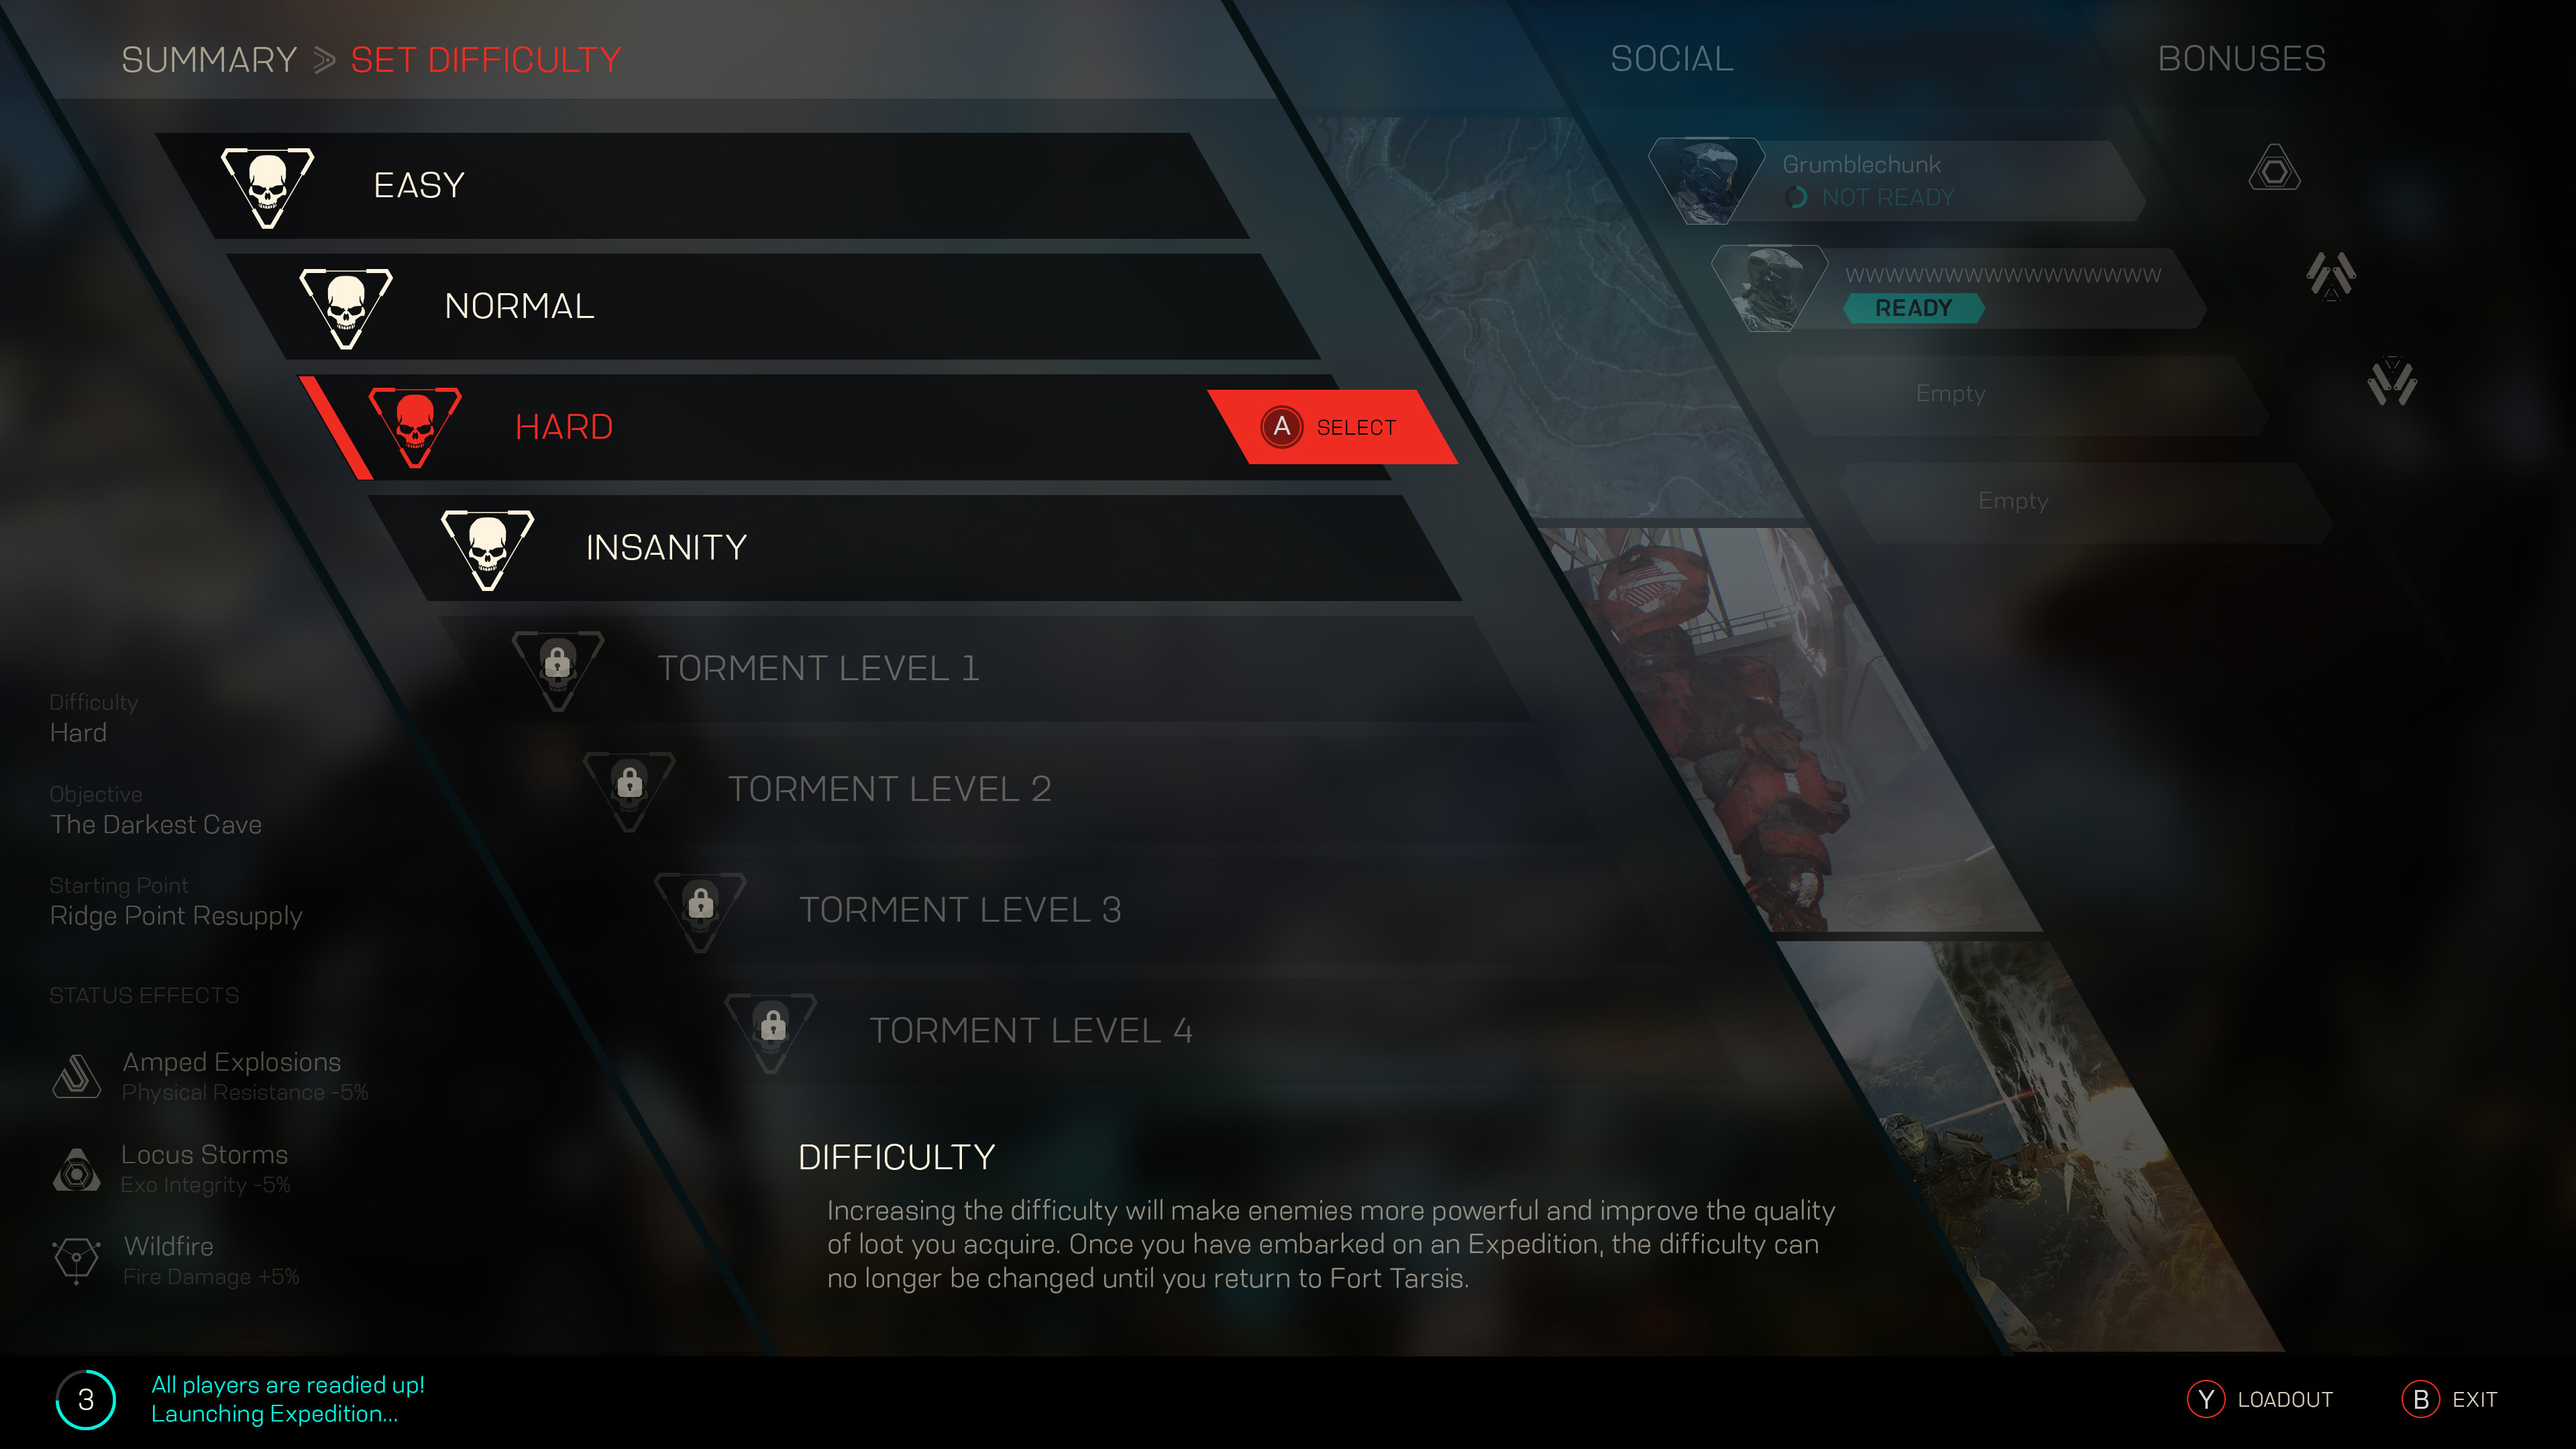 Difficulty submenu in Expedition Start.